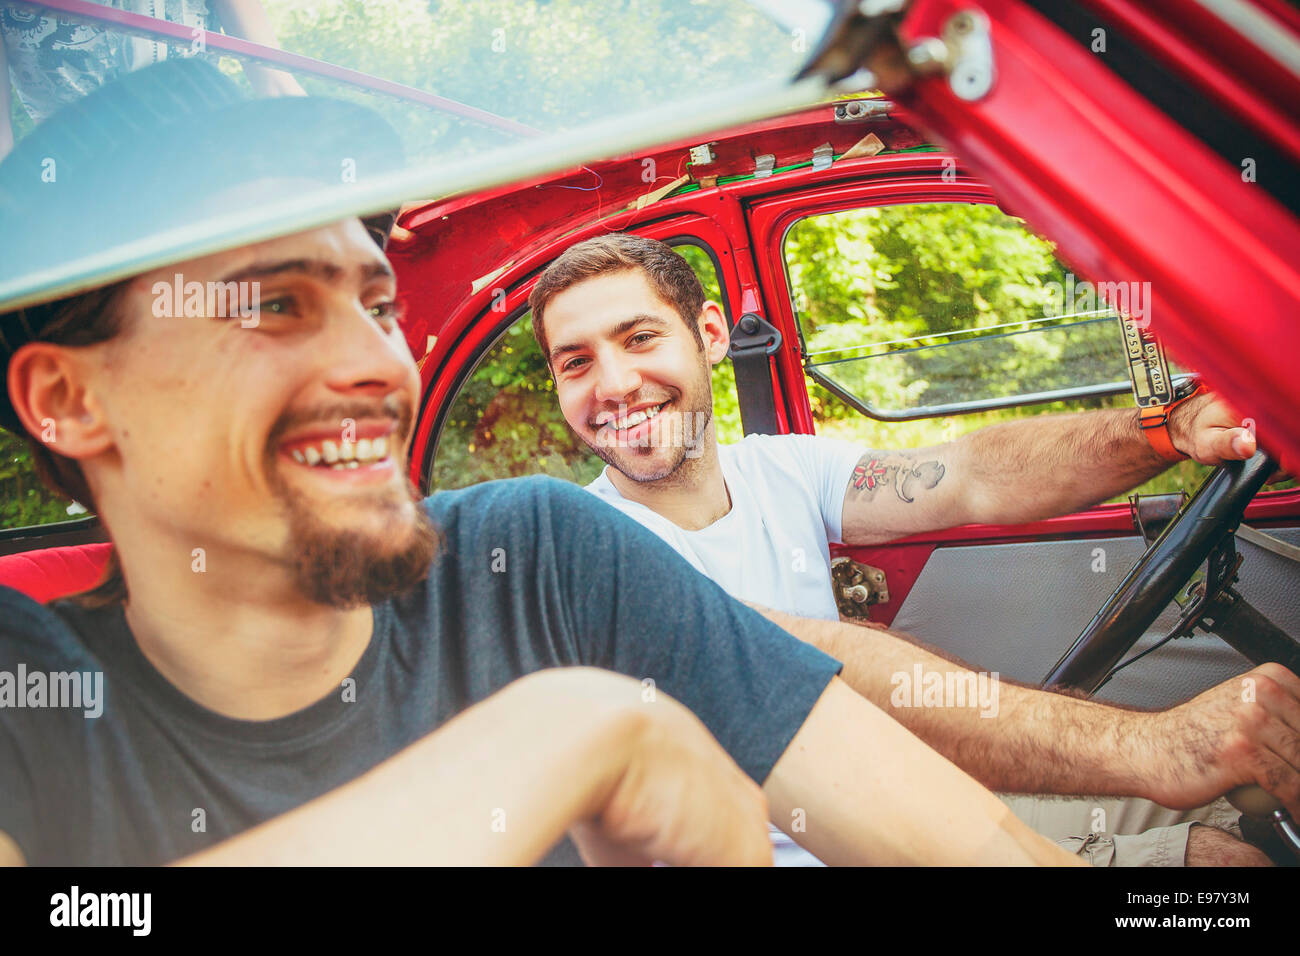 Portrait of two young men in red car smiling merrily - Stock Image